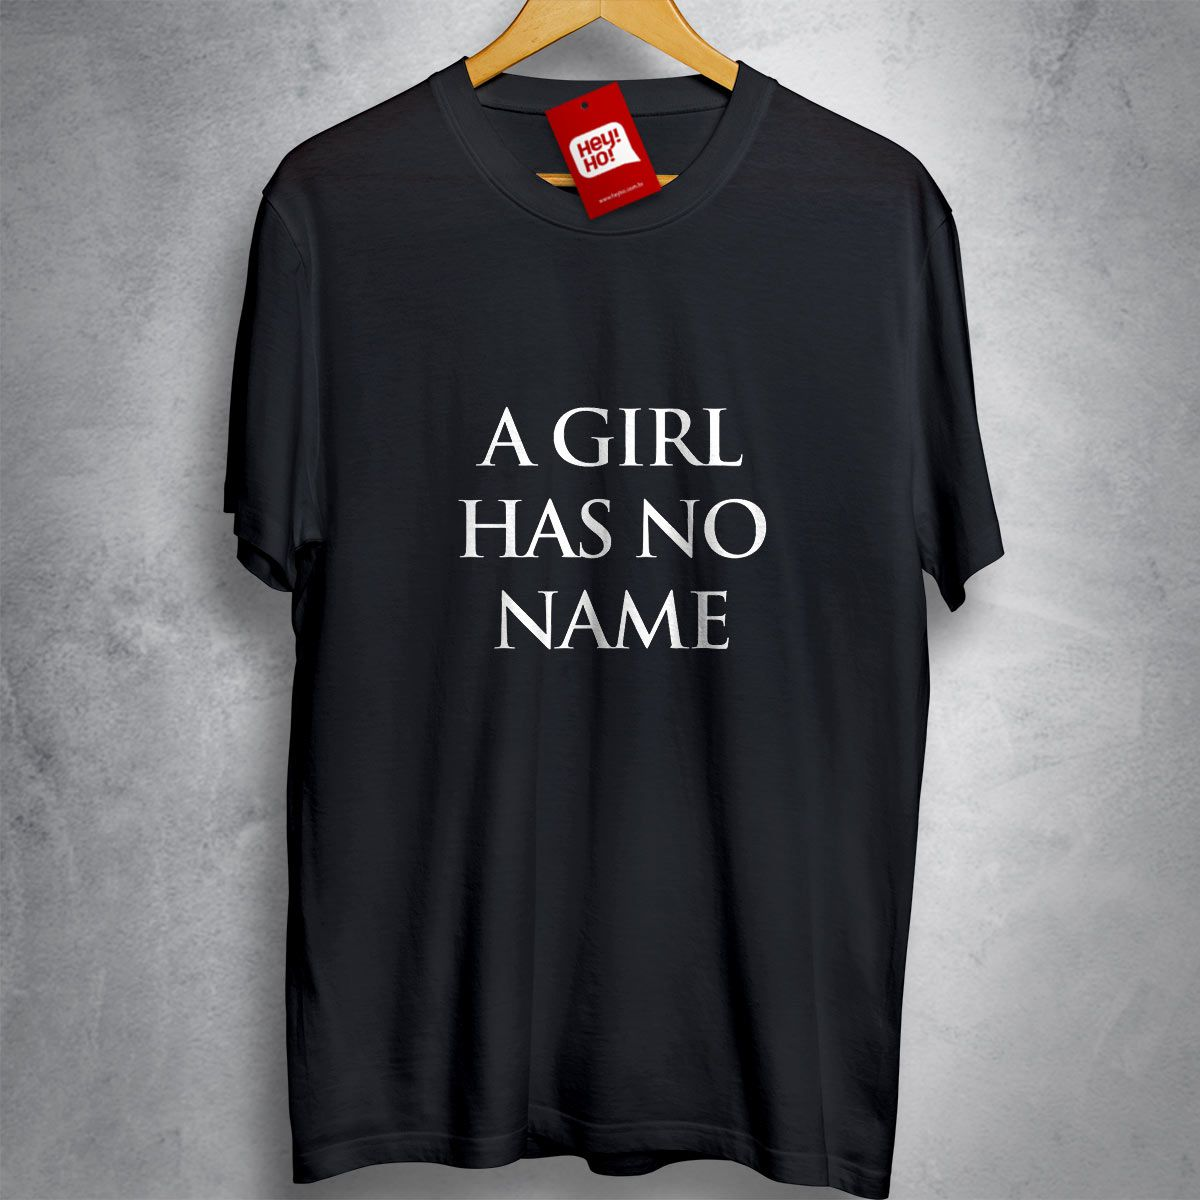 GAME OF THRONES - A girl has no name